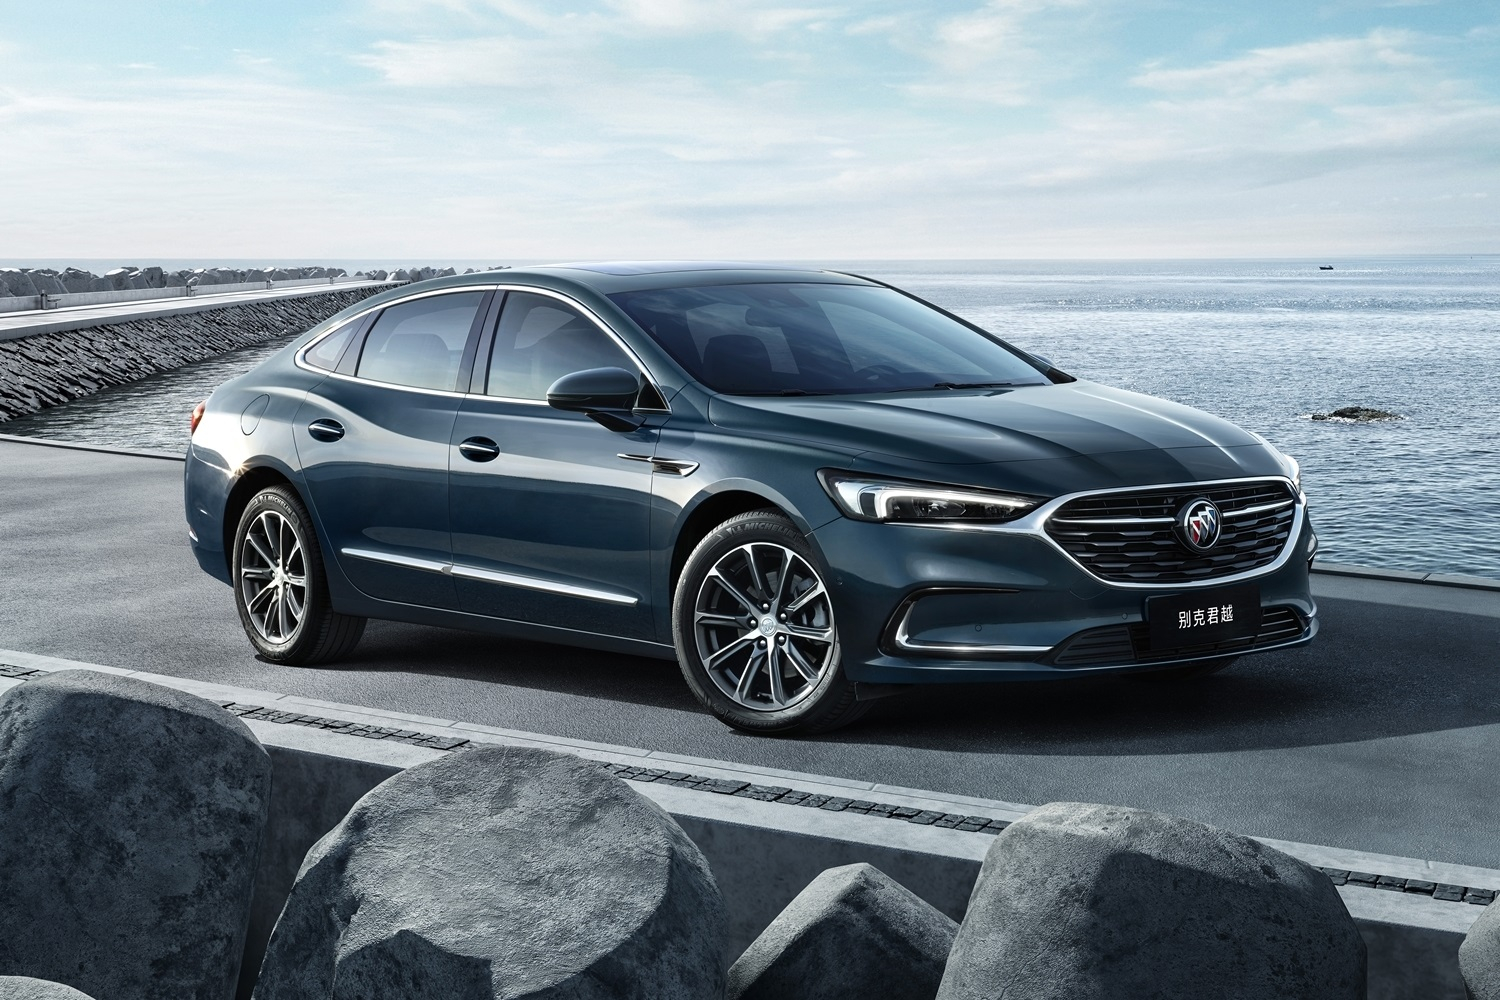 2021 Buick Lacrosse Gets More Refined Than Ever   Gm Authority 2022 Buick Lacrosse Price, Gas Mileage, Horsepower